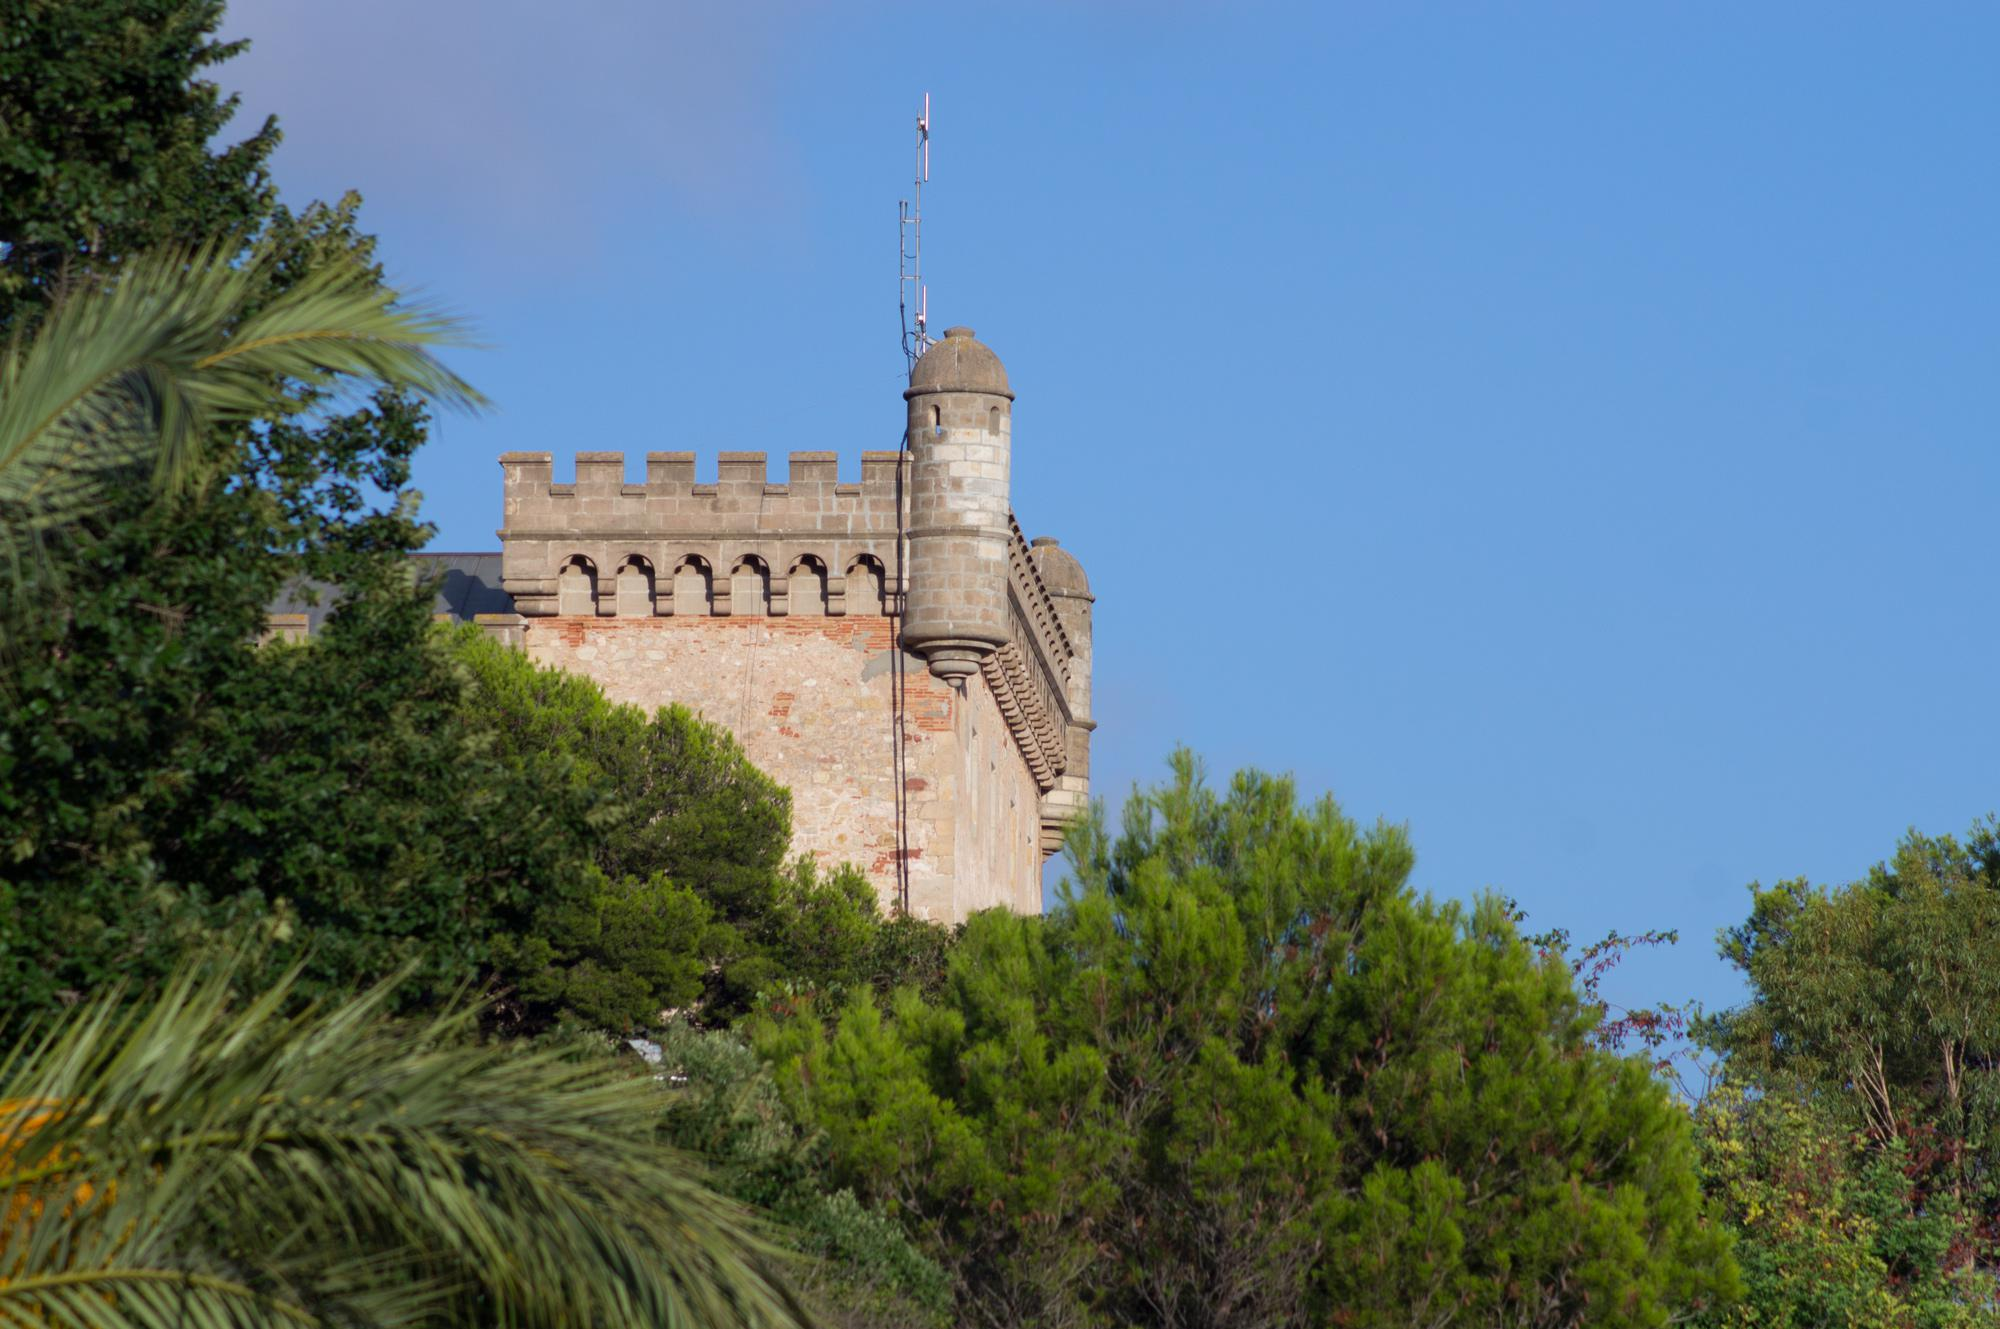 View of the castle in the town of Castelldefels near Barcelona, Catalonia